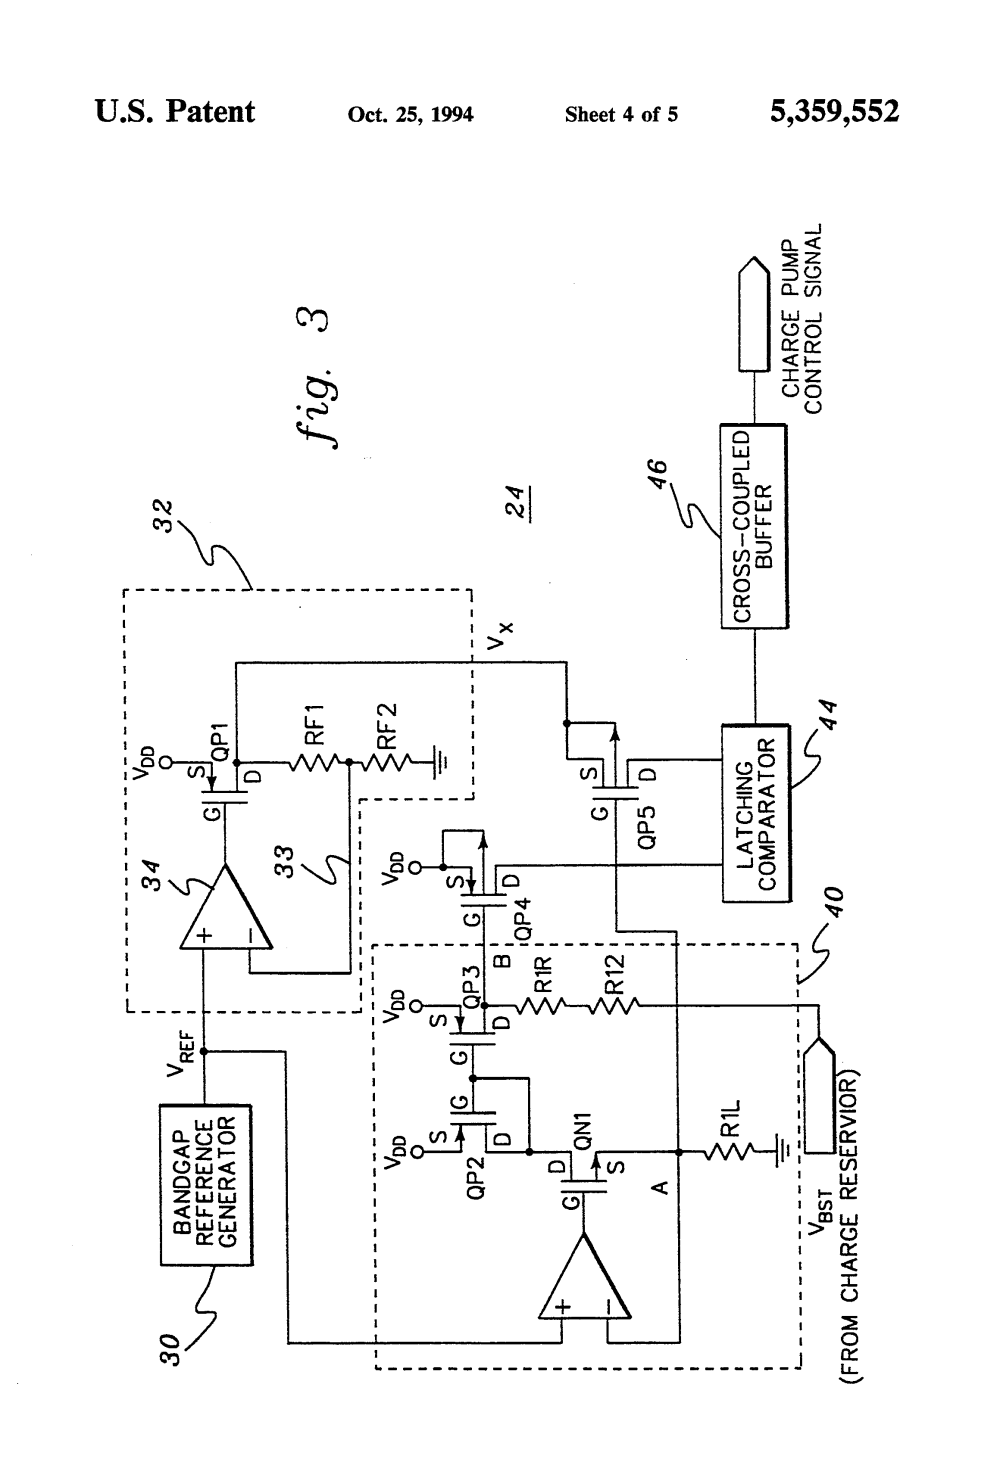 medium resolution of patent us5359552 power supply tracking regulator for a memory power generator google patents on wiring a sub panel for generator